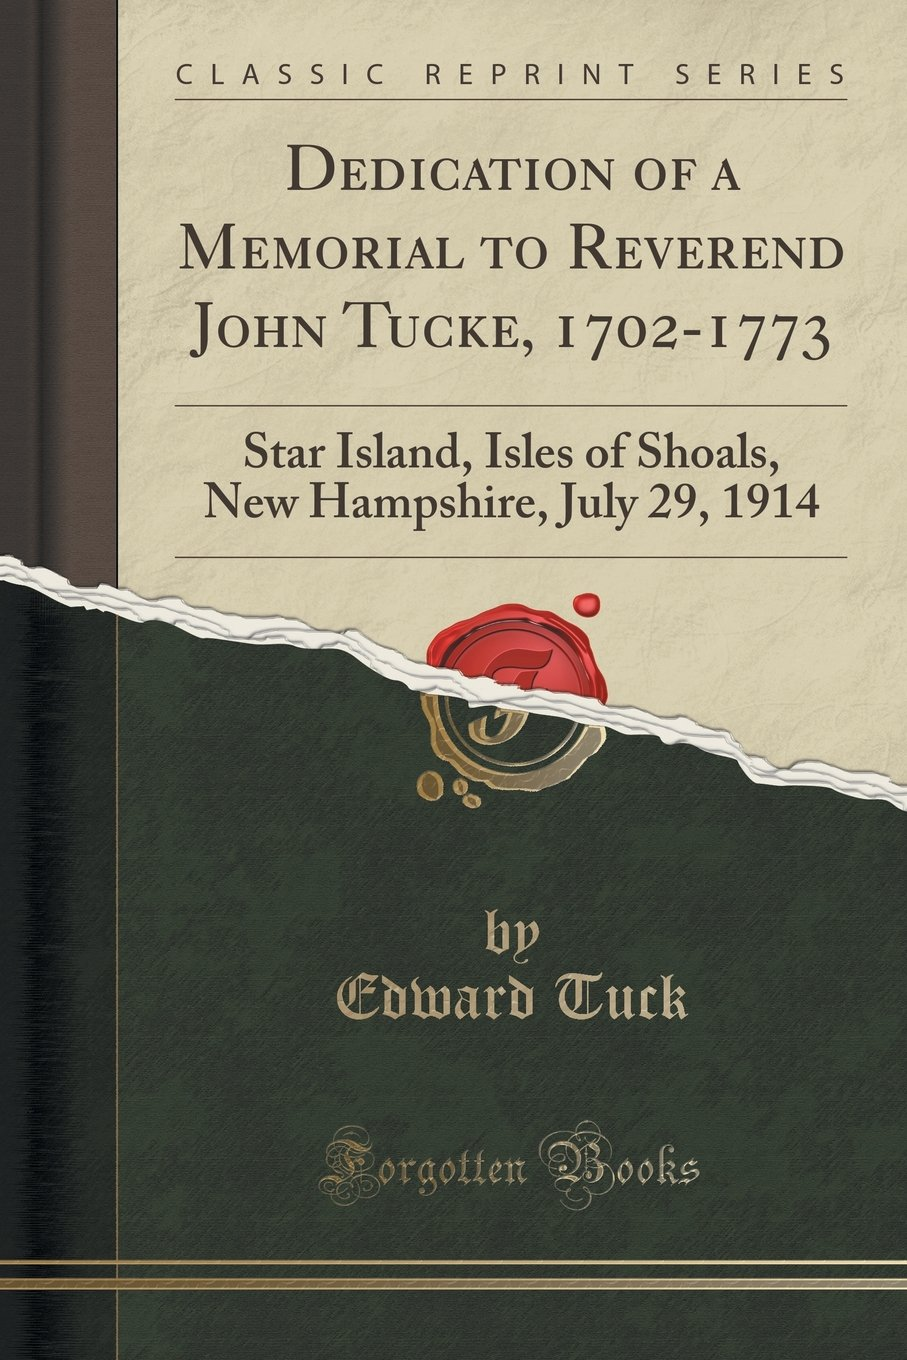 Dedication of a Memorial to Reverend John Tucke, 1702-1773: Star Island, Isles of Shoals, New Hampshire, July 29, 1914 (Classic Reprint)